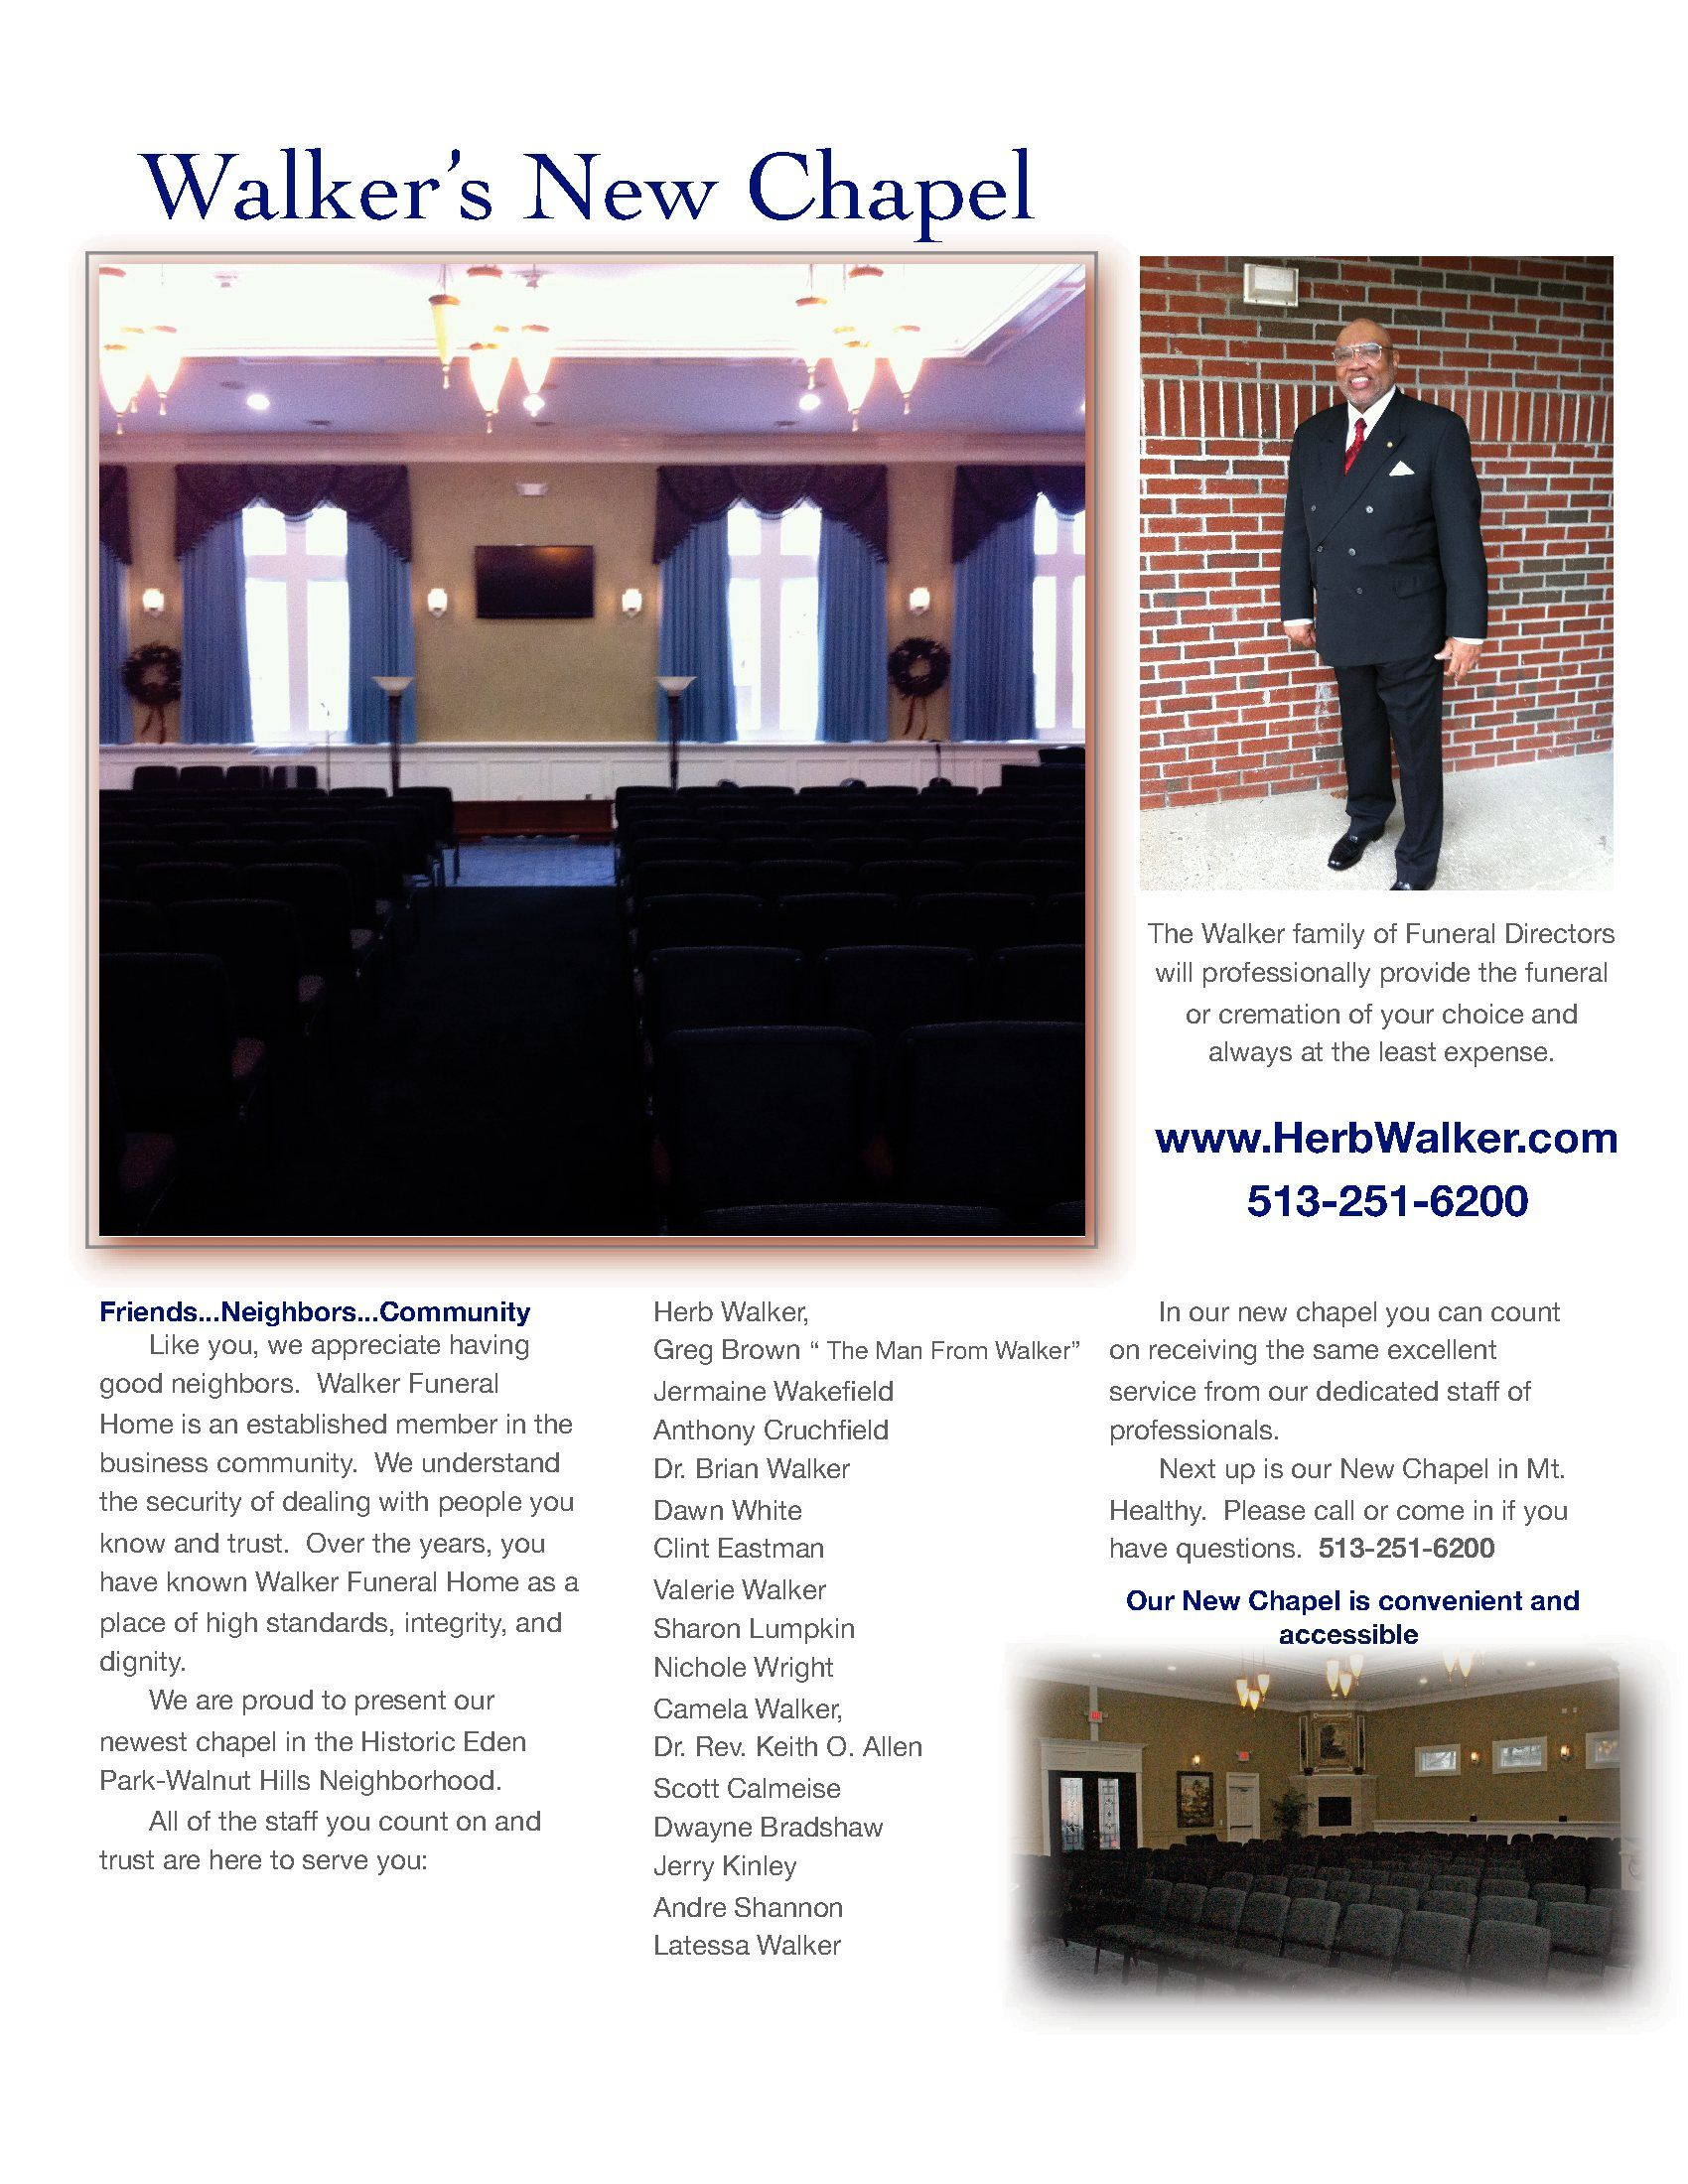 Walker Funeral Home Walnut Hills Chapel